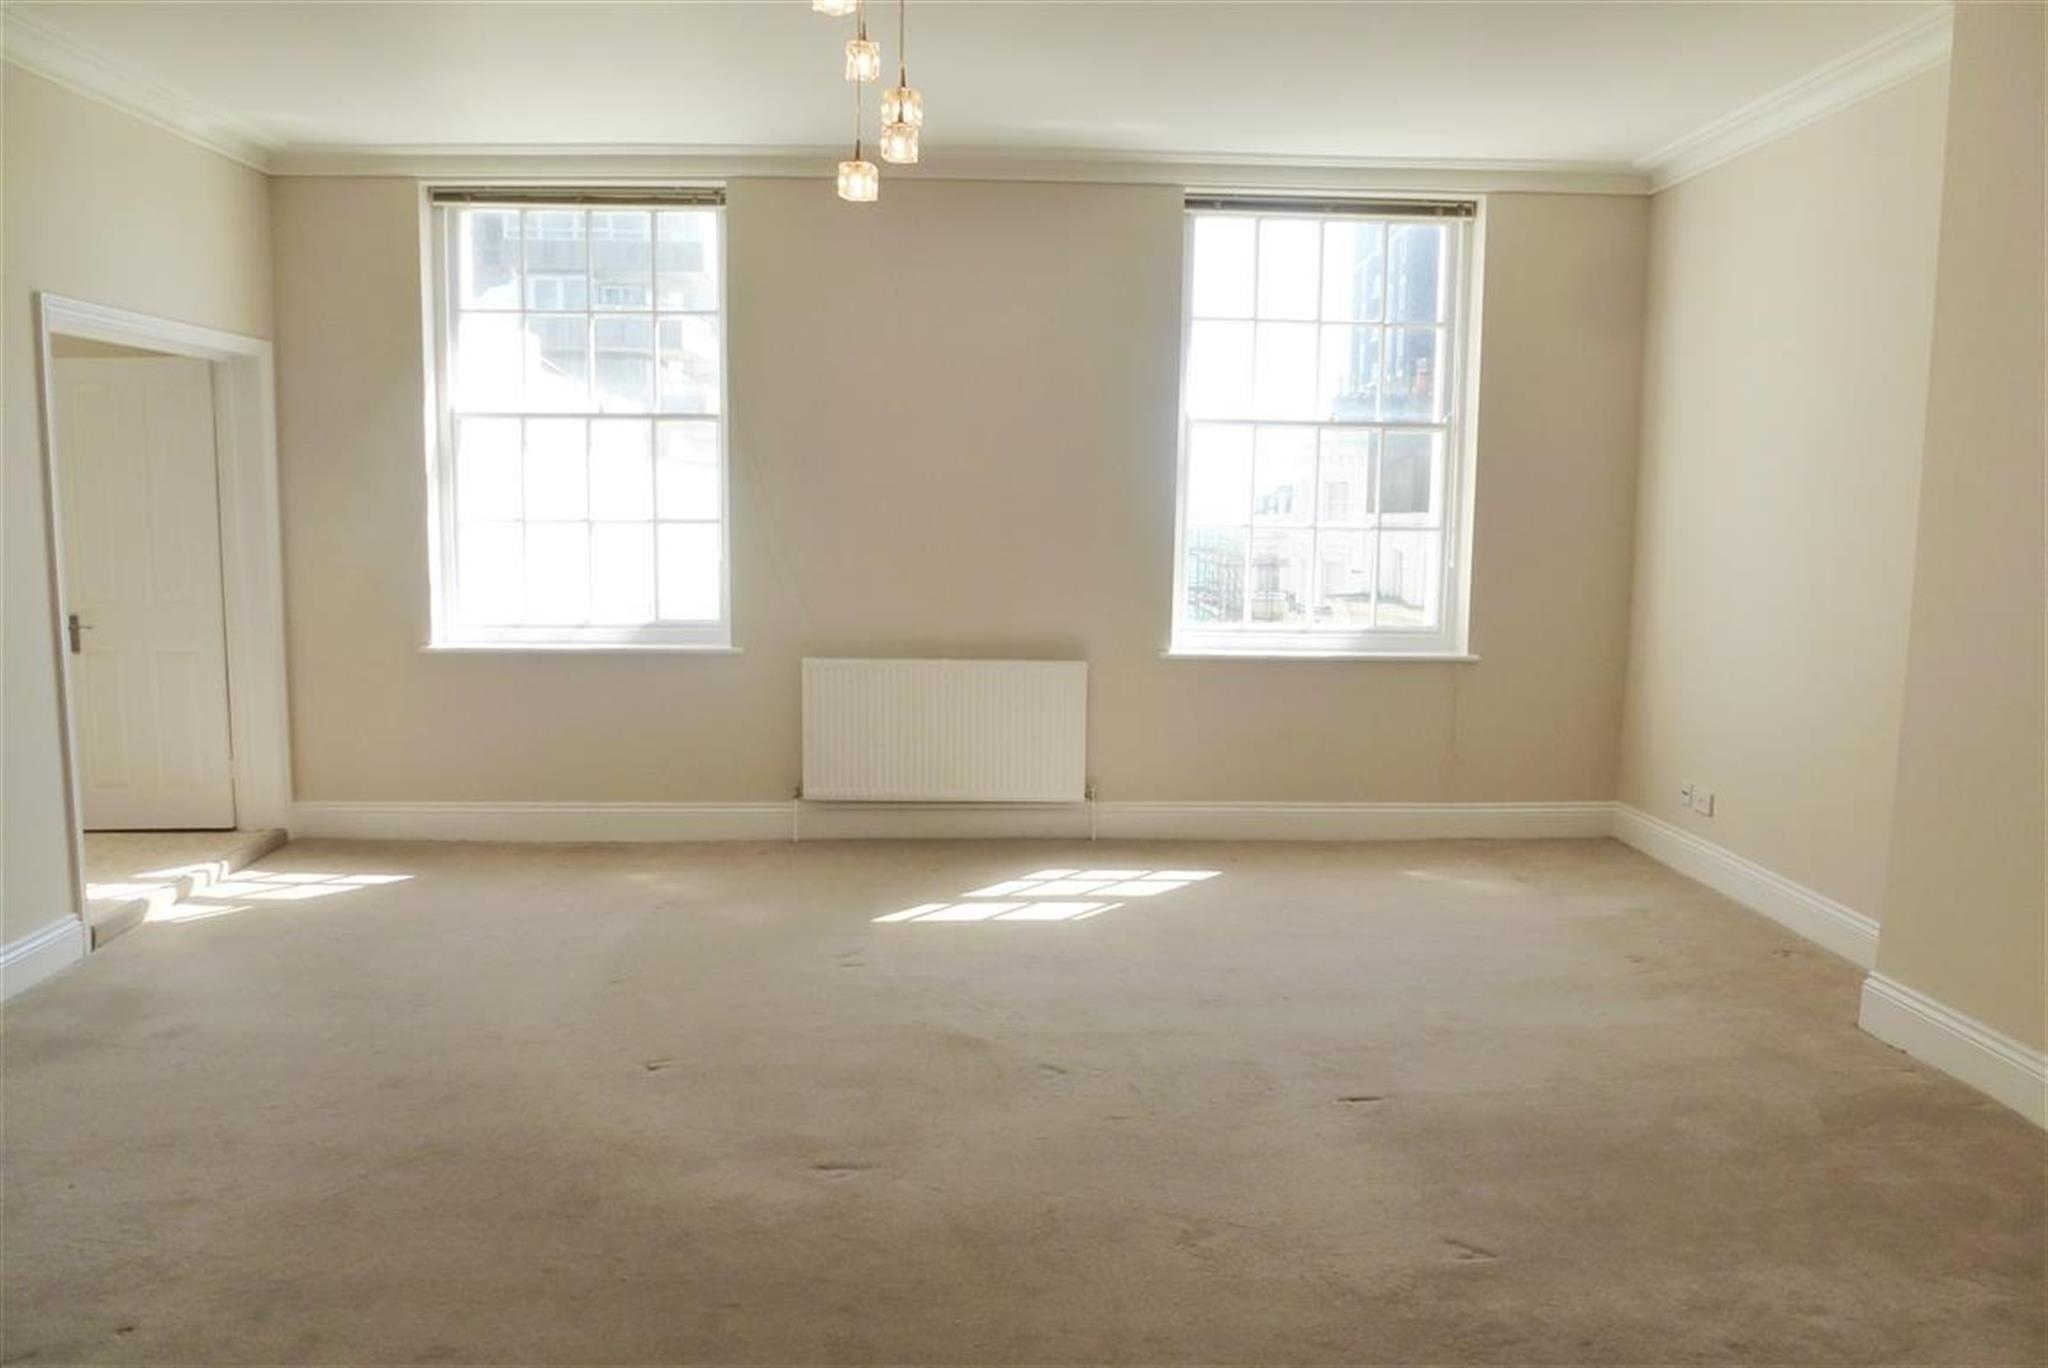 2 bedroom apartment to rent cavendish place brighton for Room to rent brighton